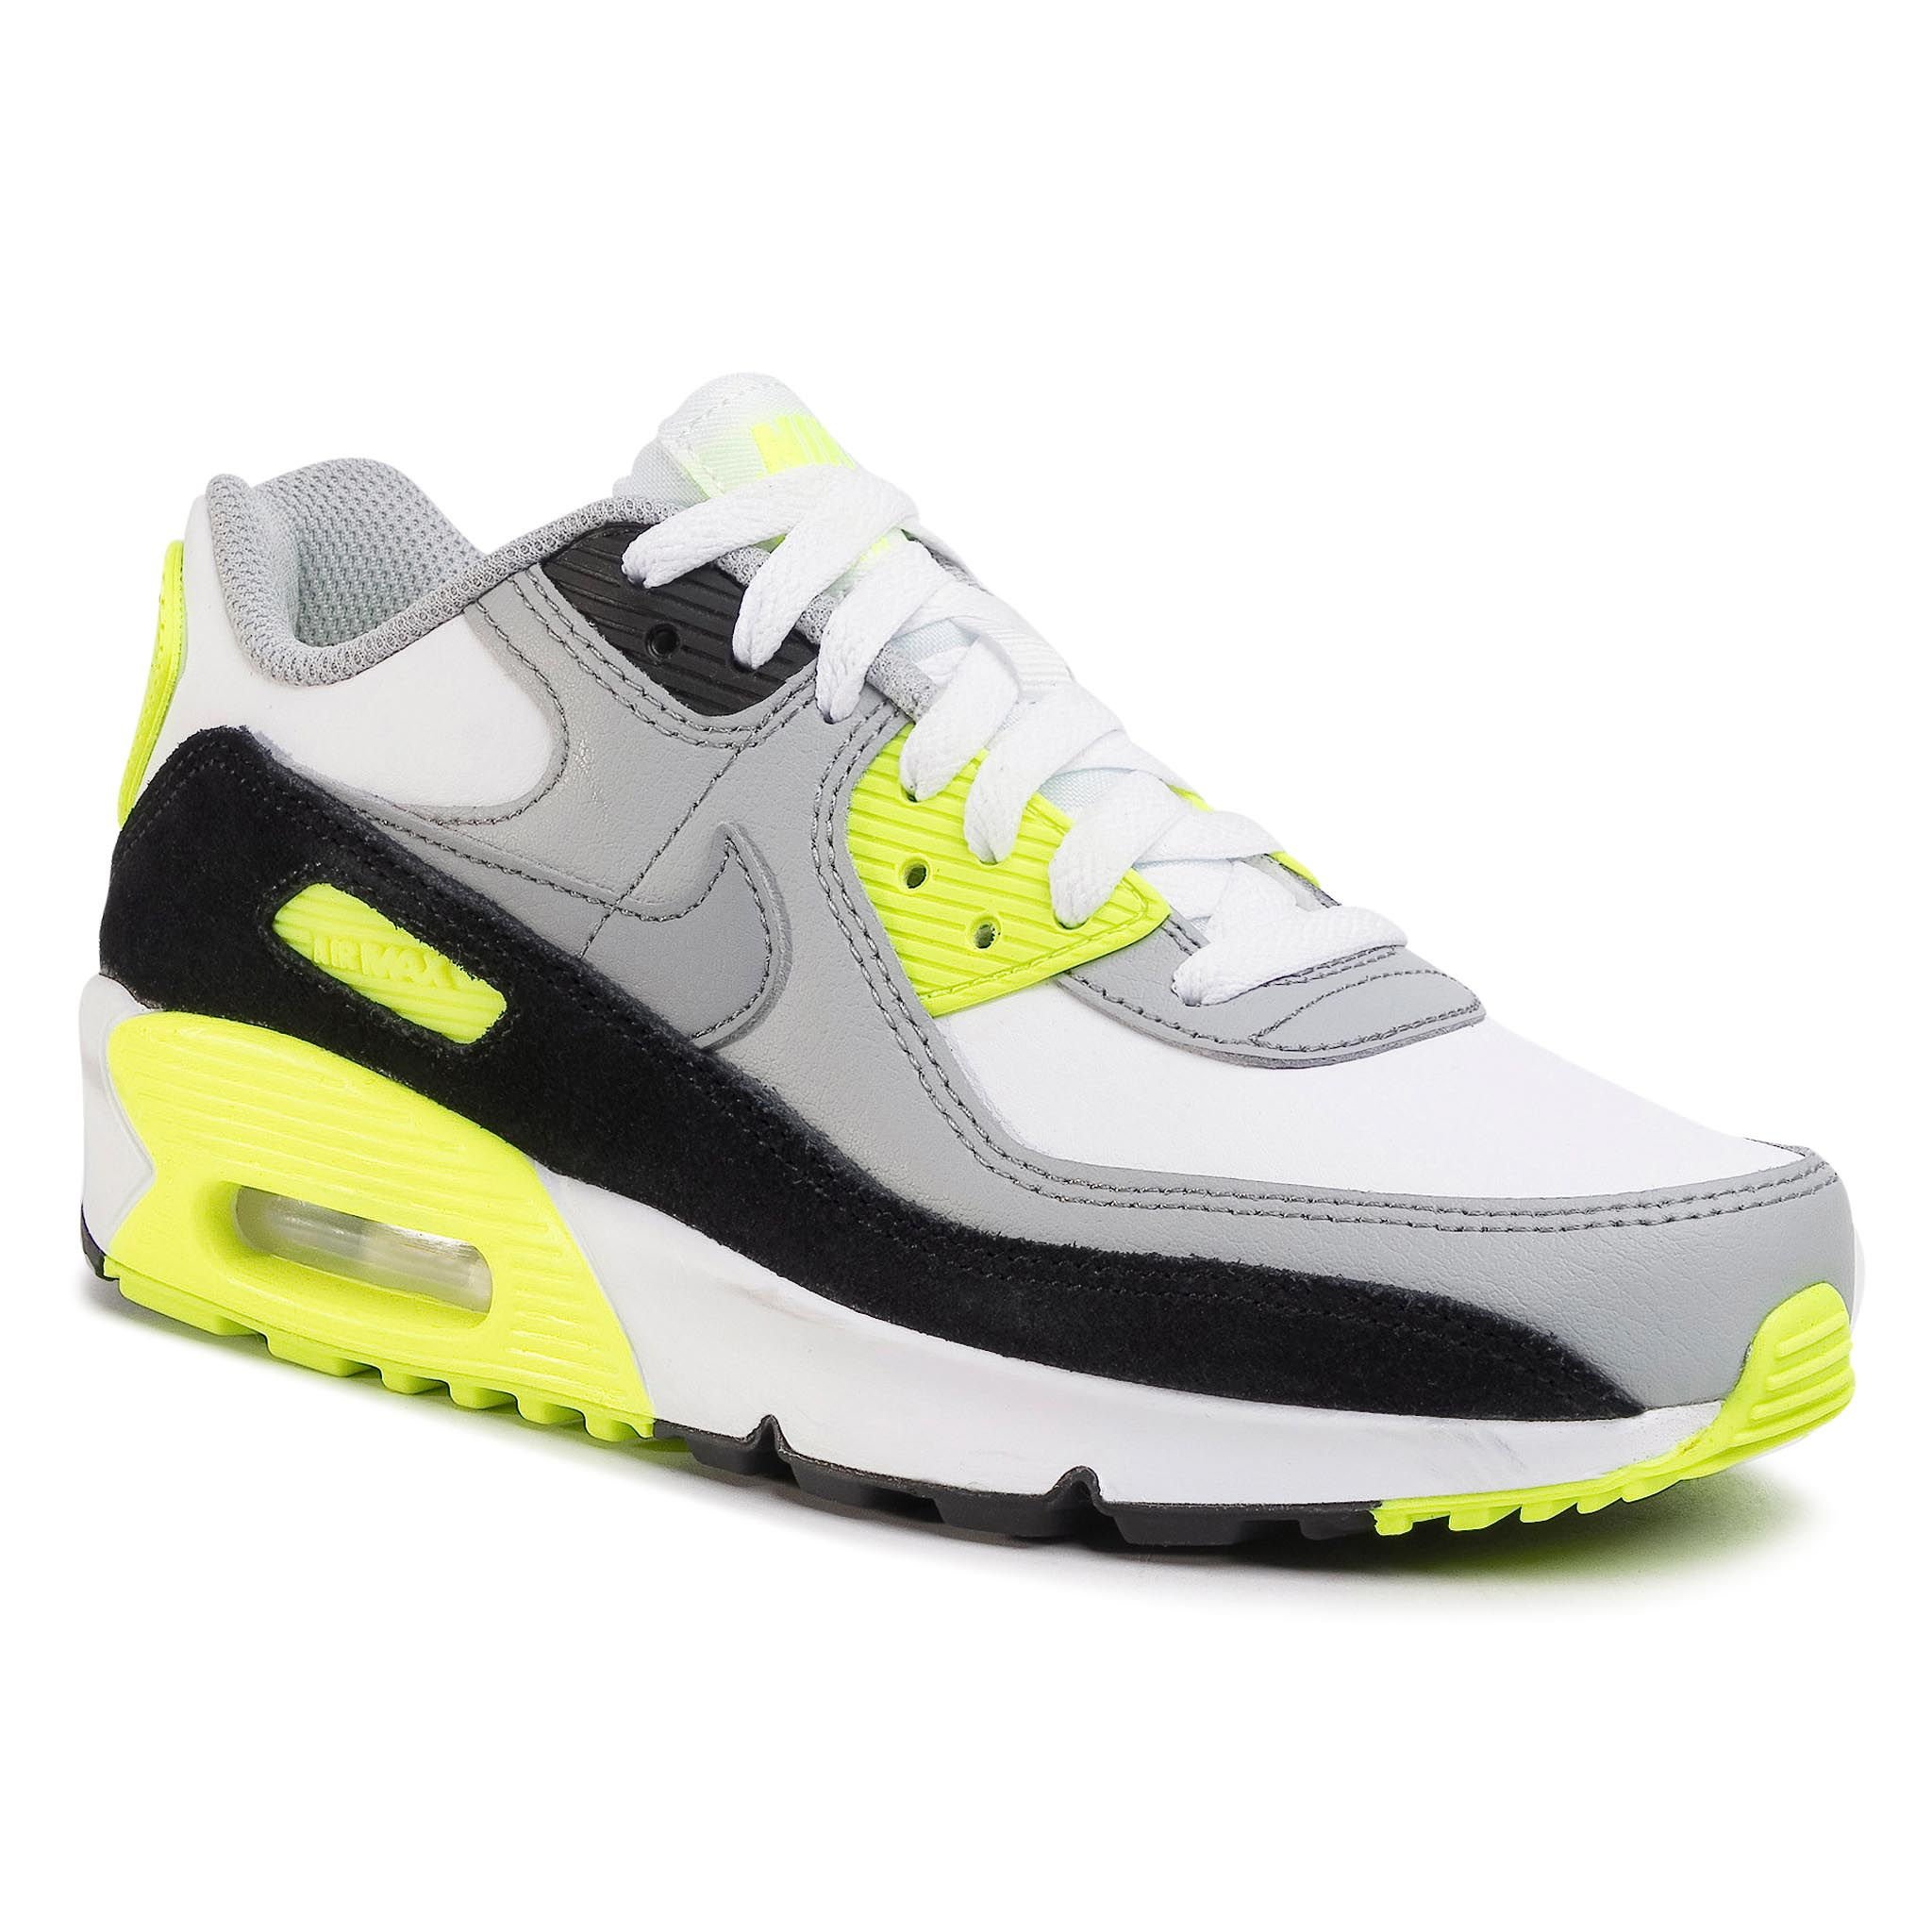 Topánky NIKE - Air Max 90 Ltr (GS) CD6864 101 White/Particle Grey